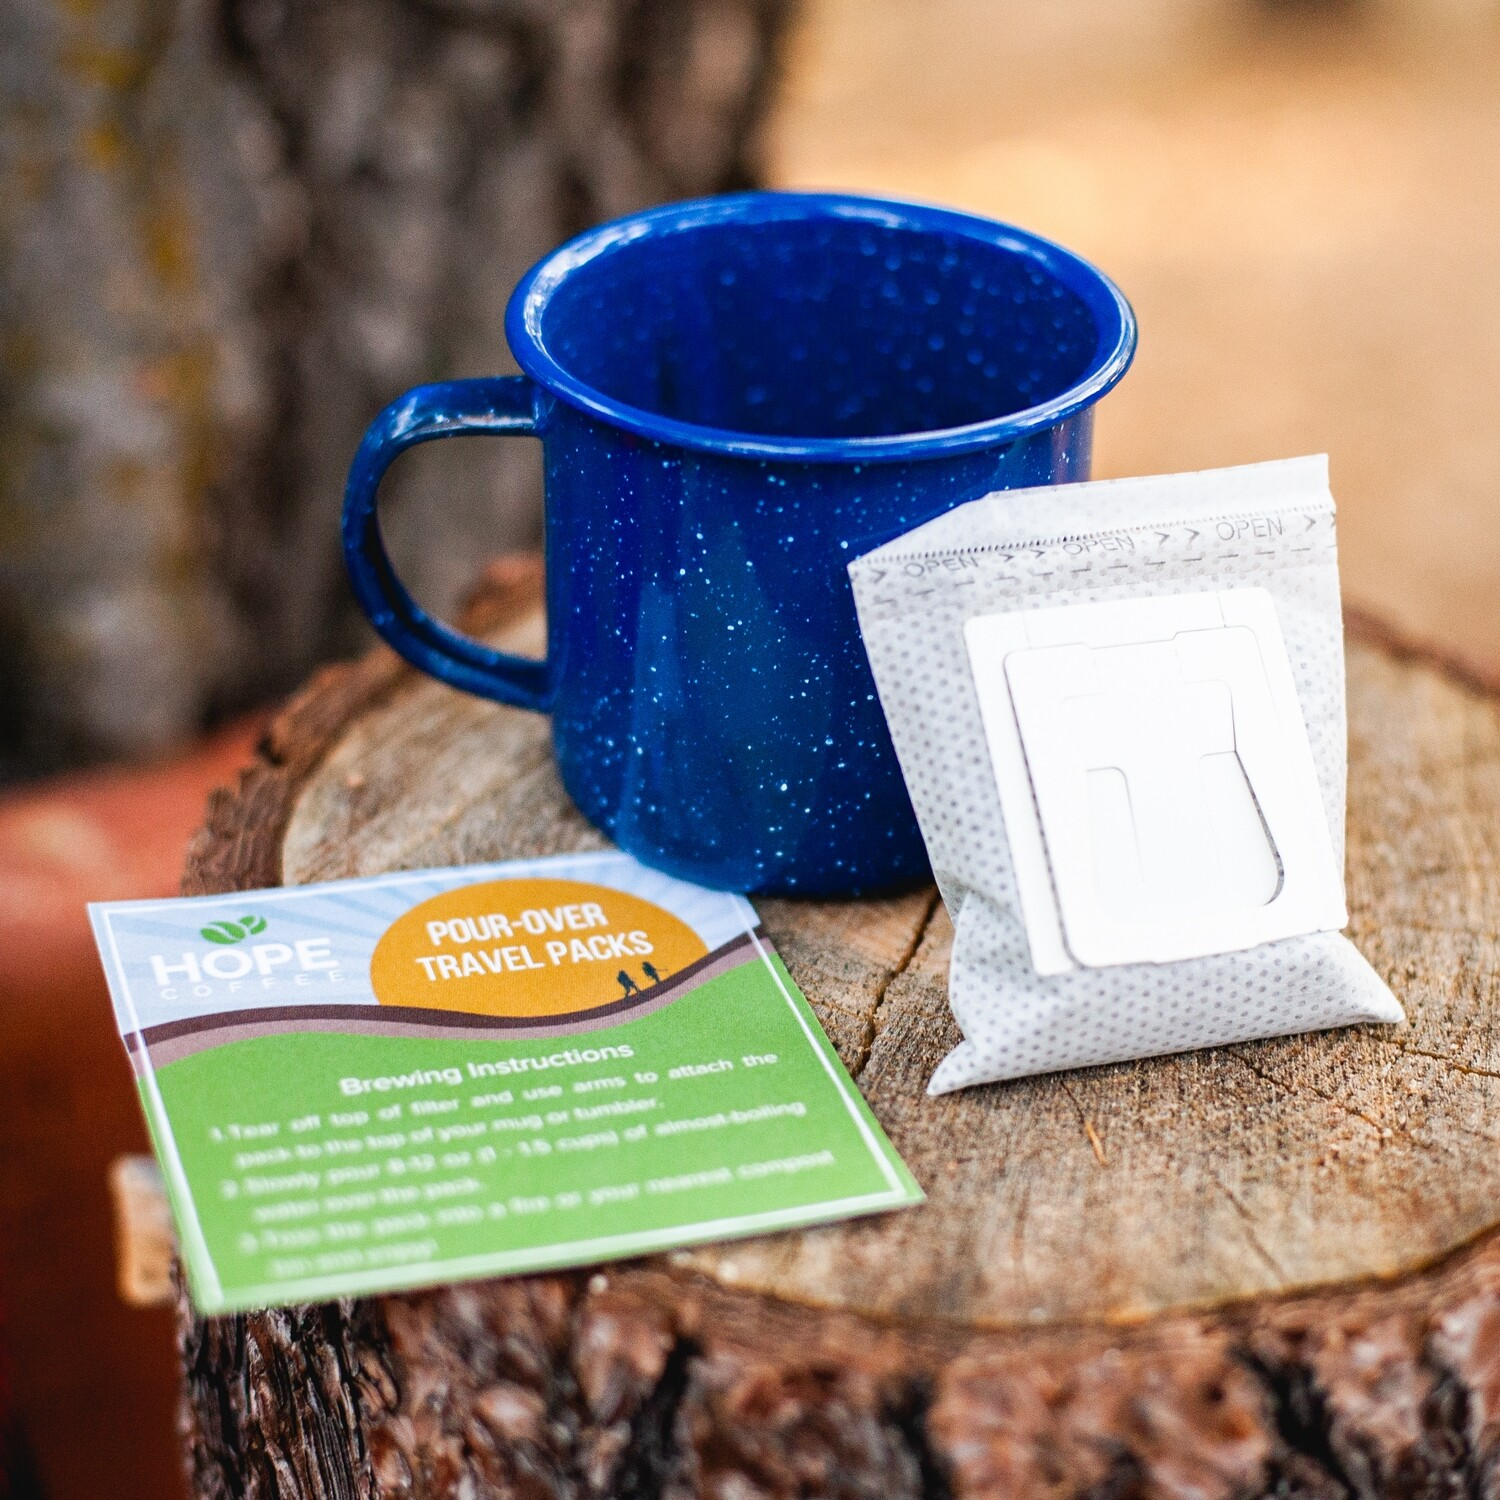 Pour Over Travel Packs starting at